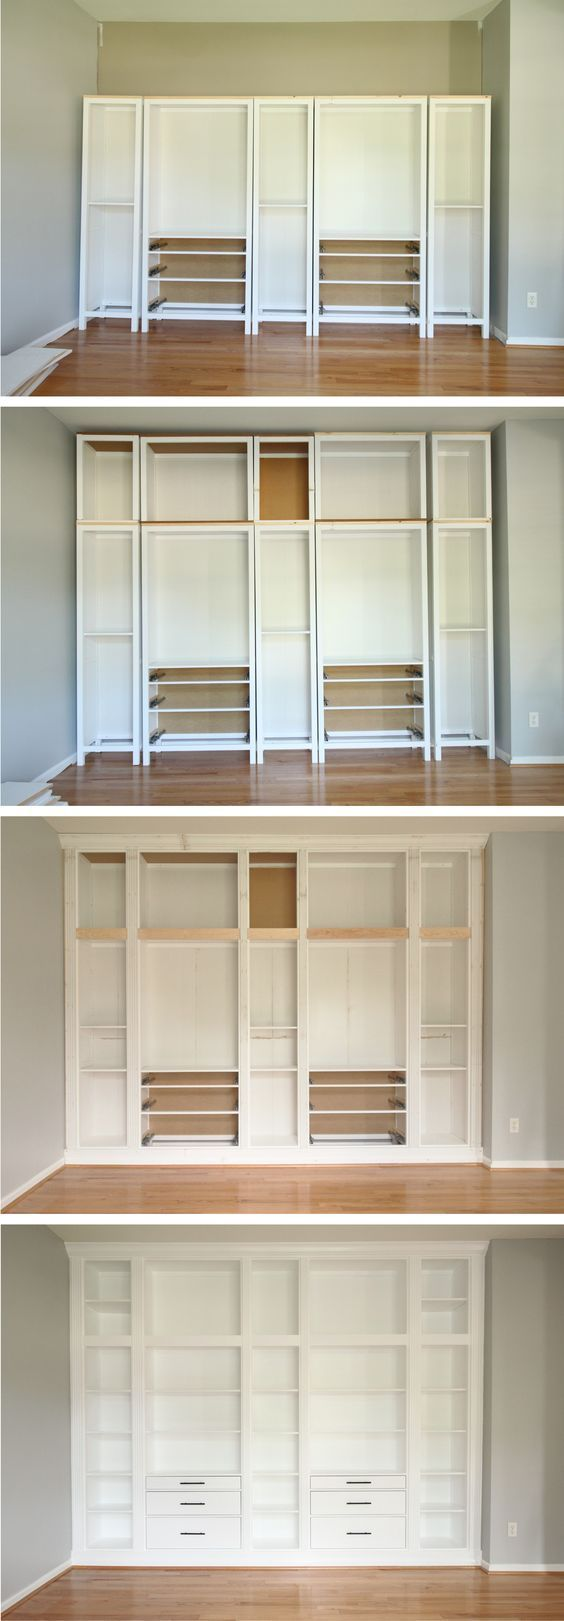 best organization images on pinterest apartment therapy